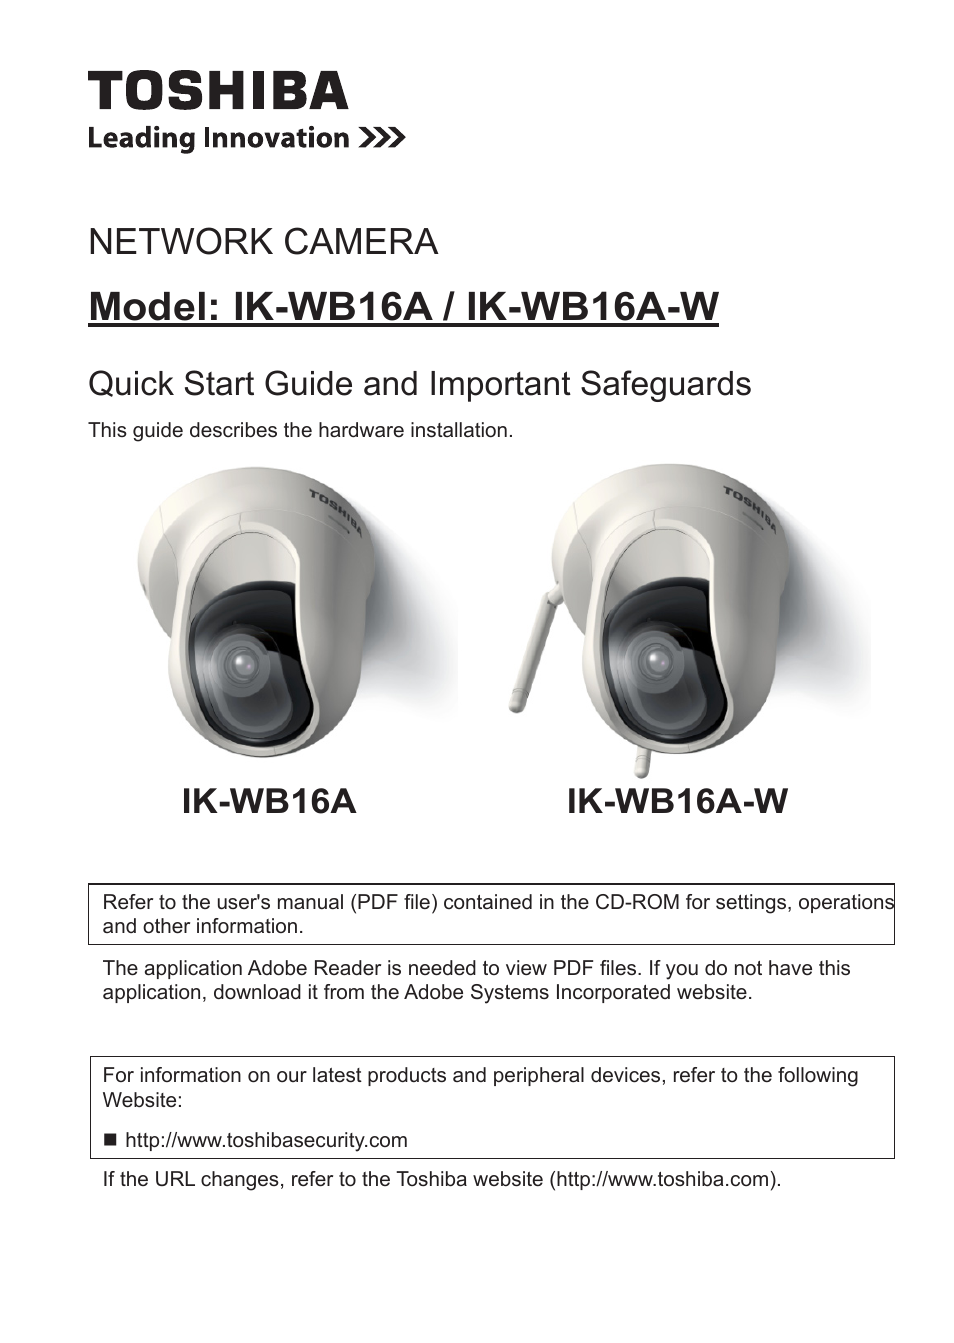 toshiba ik wb16a w user manual 24 pages also for ik wb16a rh manualsdir com Wireless Network Camera Toshiba CCD Color Camera